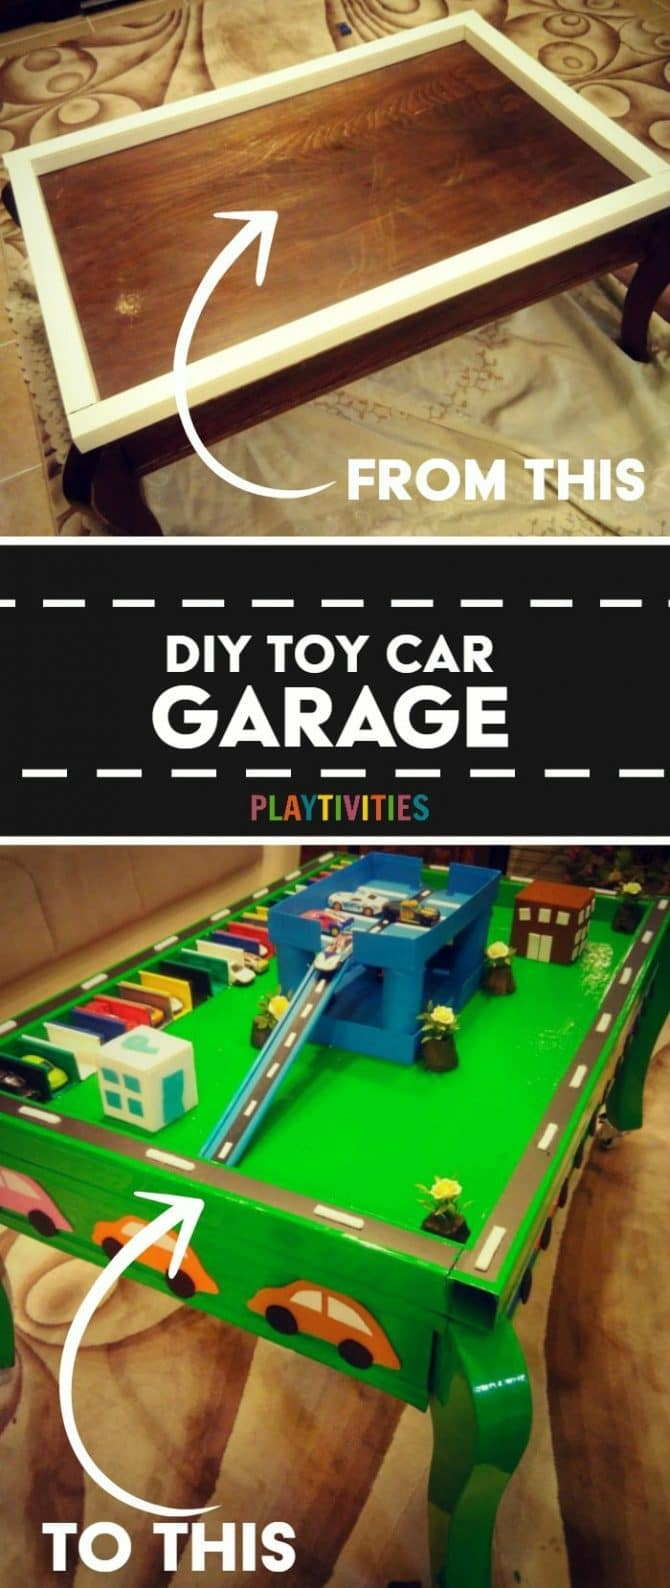 Diy toy car garage table that cost almost nothing to make for Diy garage cost